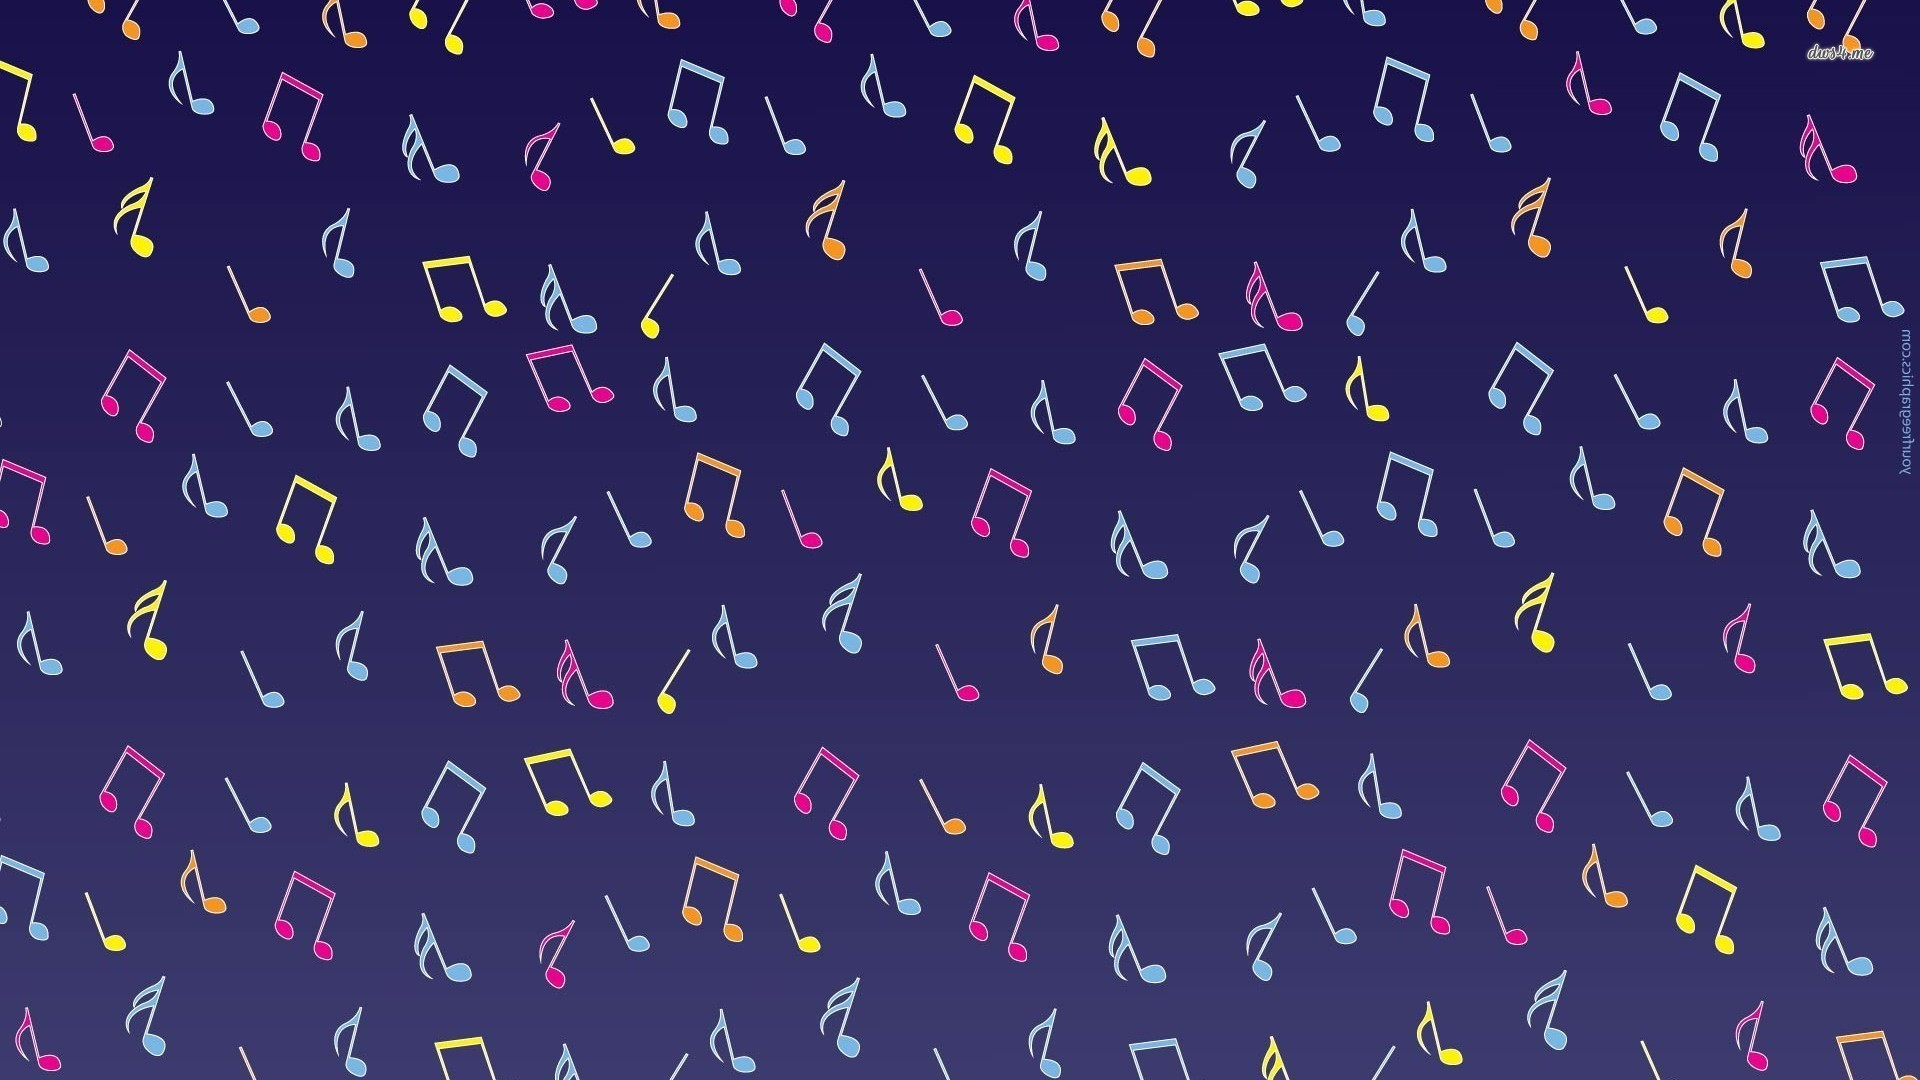 Must see Wallpaper Music Note 3 - 432742-download-music-note-wallpapers-1920x1080-for-android-tablet  Graphic_345626.jpg